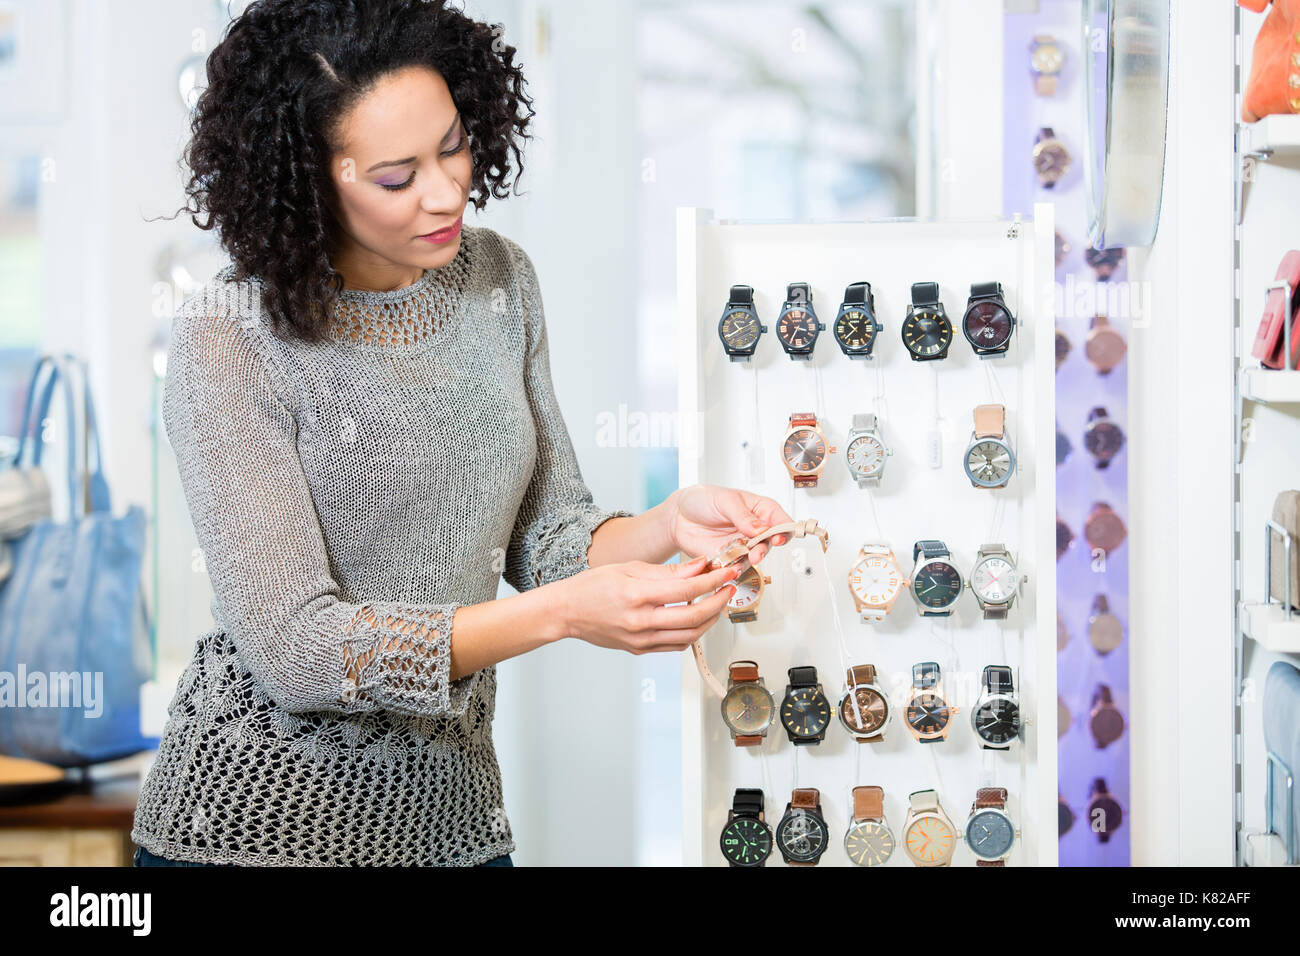 Young woman in jewellery store looking for wristwatches - Stock Image